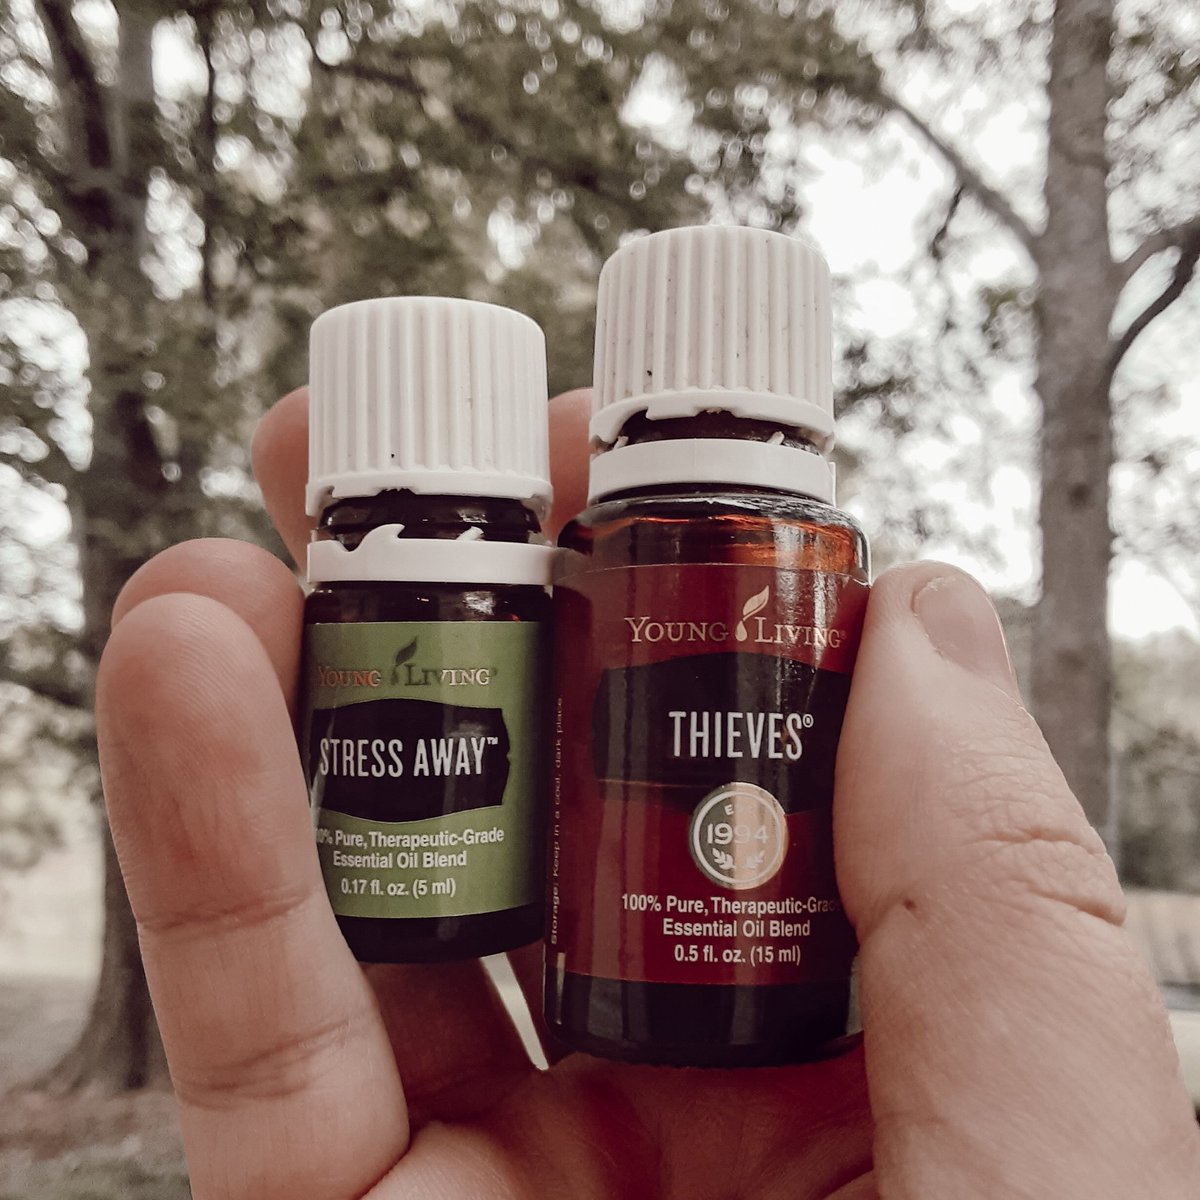 All the #fall vibes going on today with all of the amazing #healthy benefits🌱 are you ready to have fall vibes in your #home everyday? DM me for my link 🍁 https://t.co/dkHSWFK5ZS